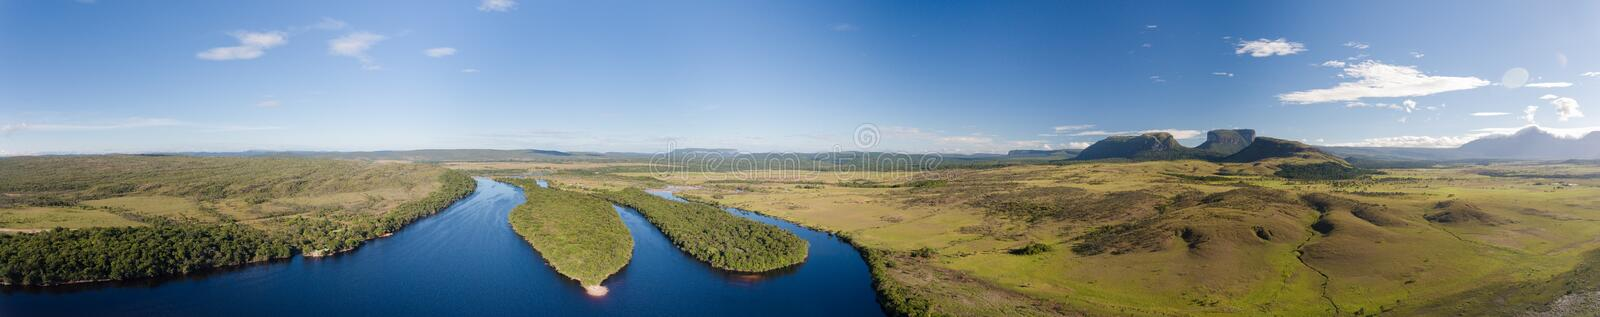 Panoramic view over Ucaima, Canaima, Venezuela royalty free stock photos